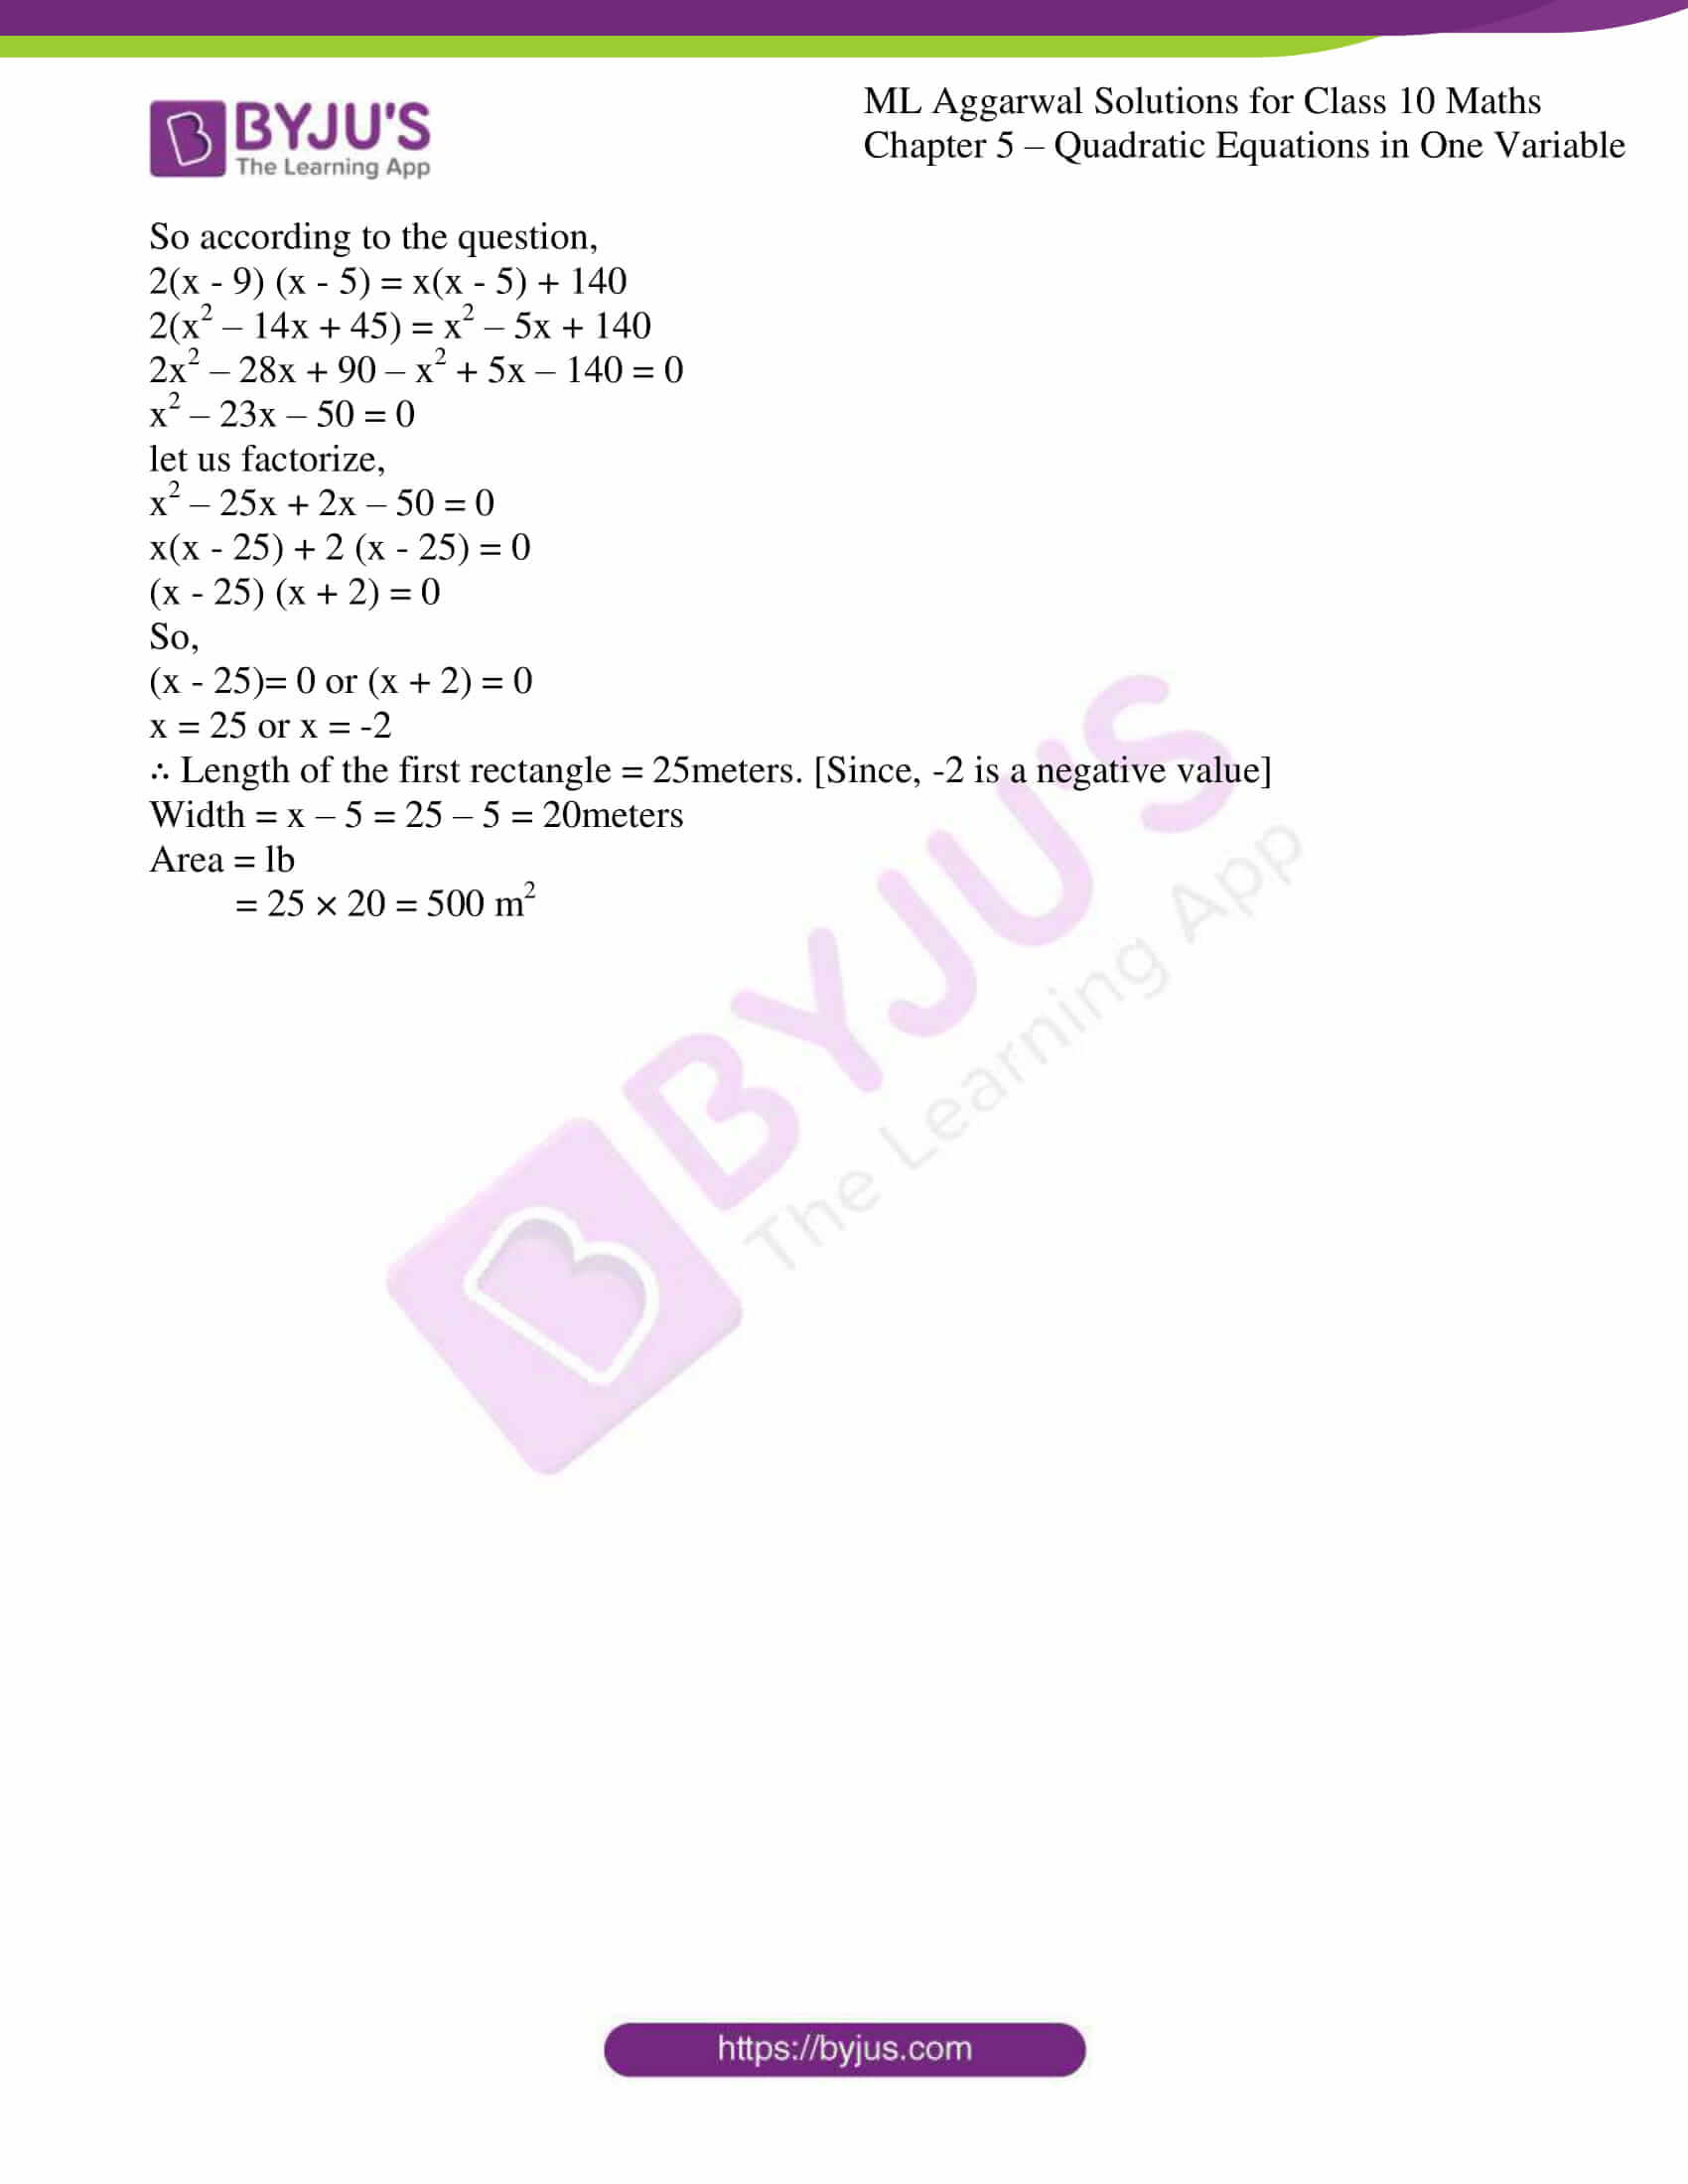 ml aggarwal solutions class 10 maths chapter 5 61